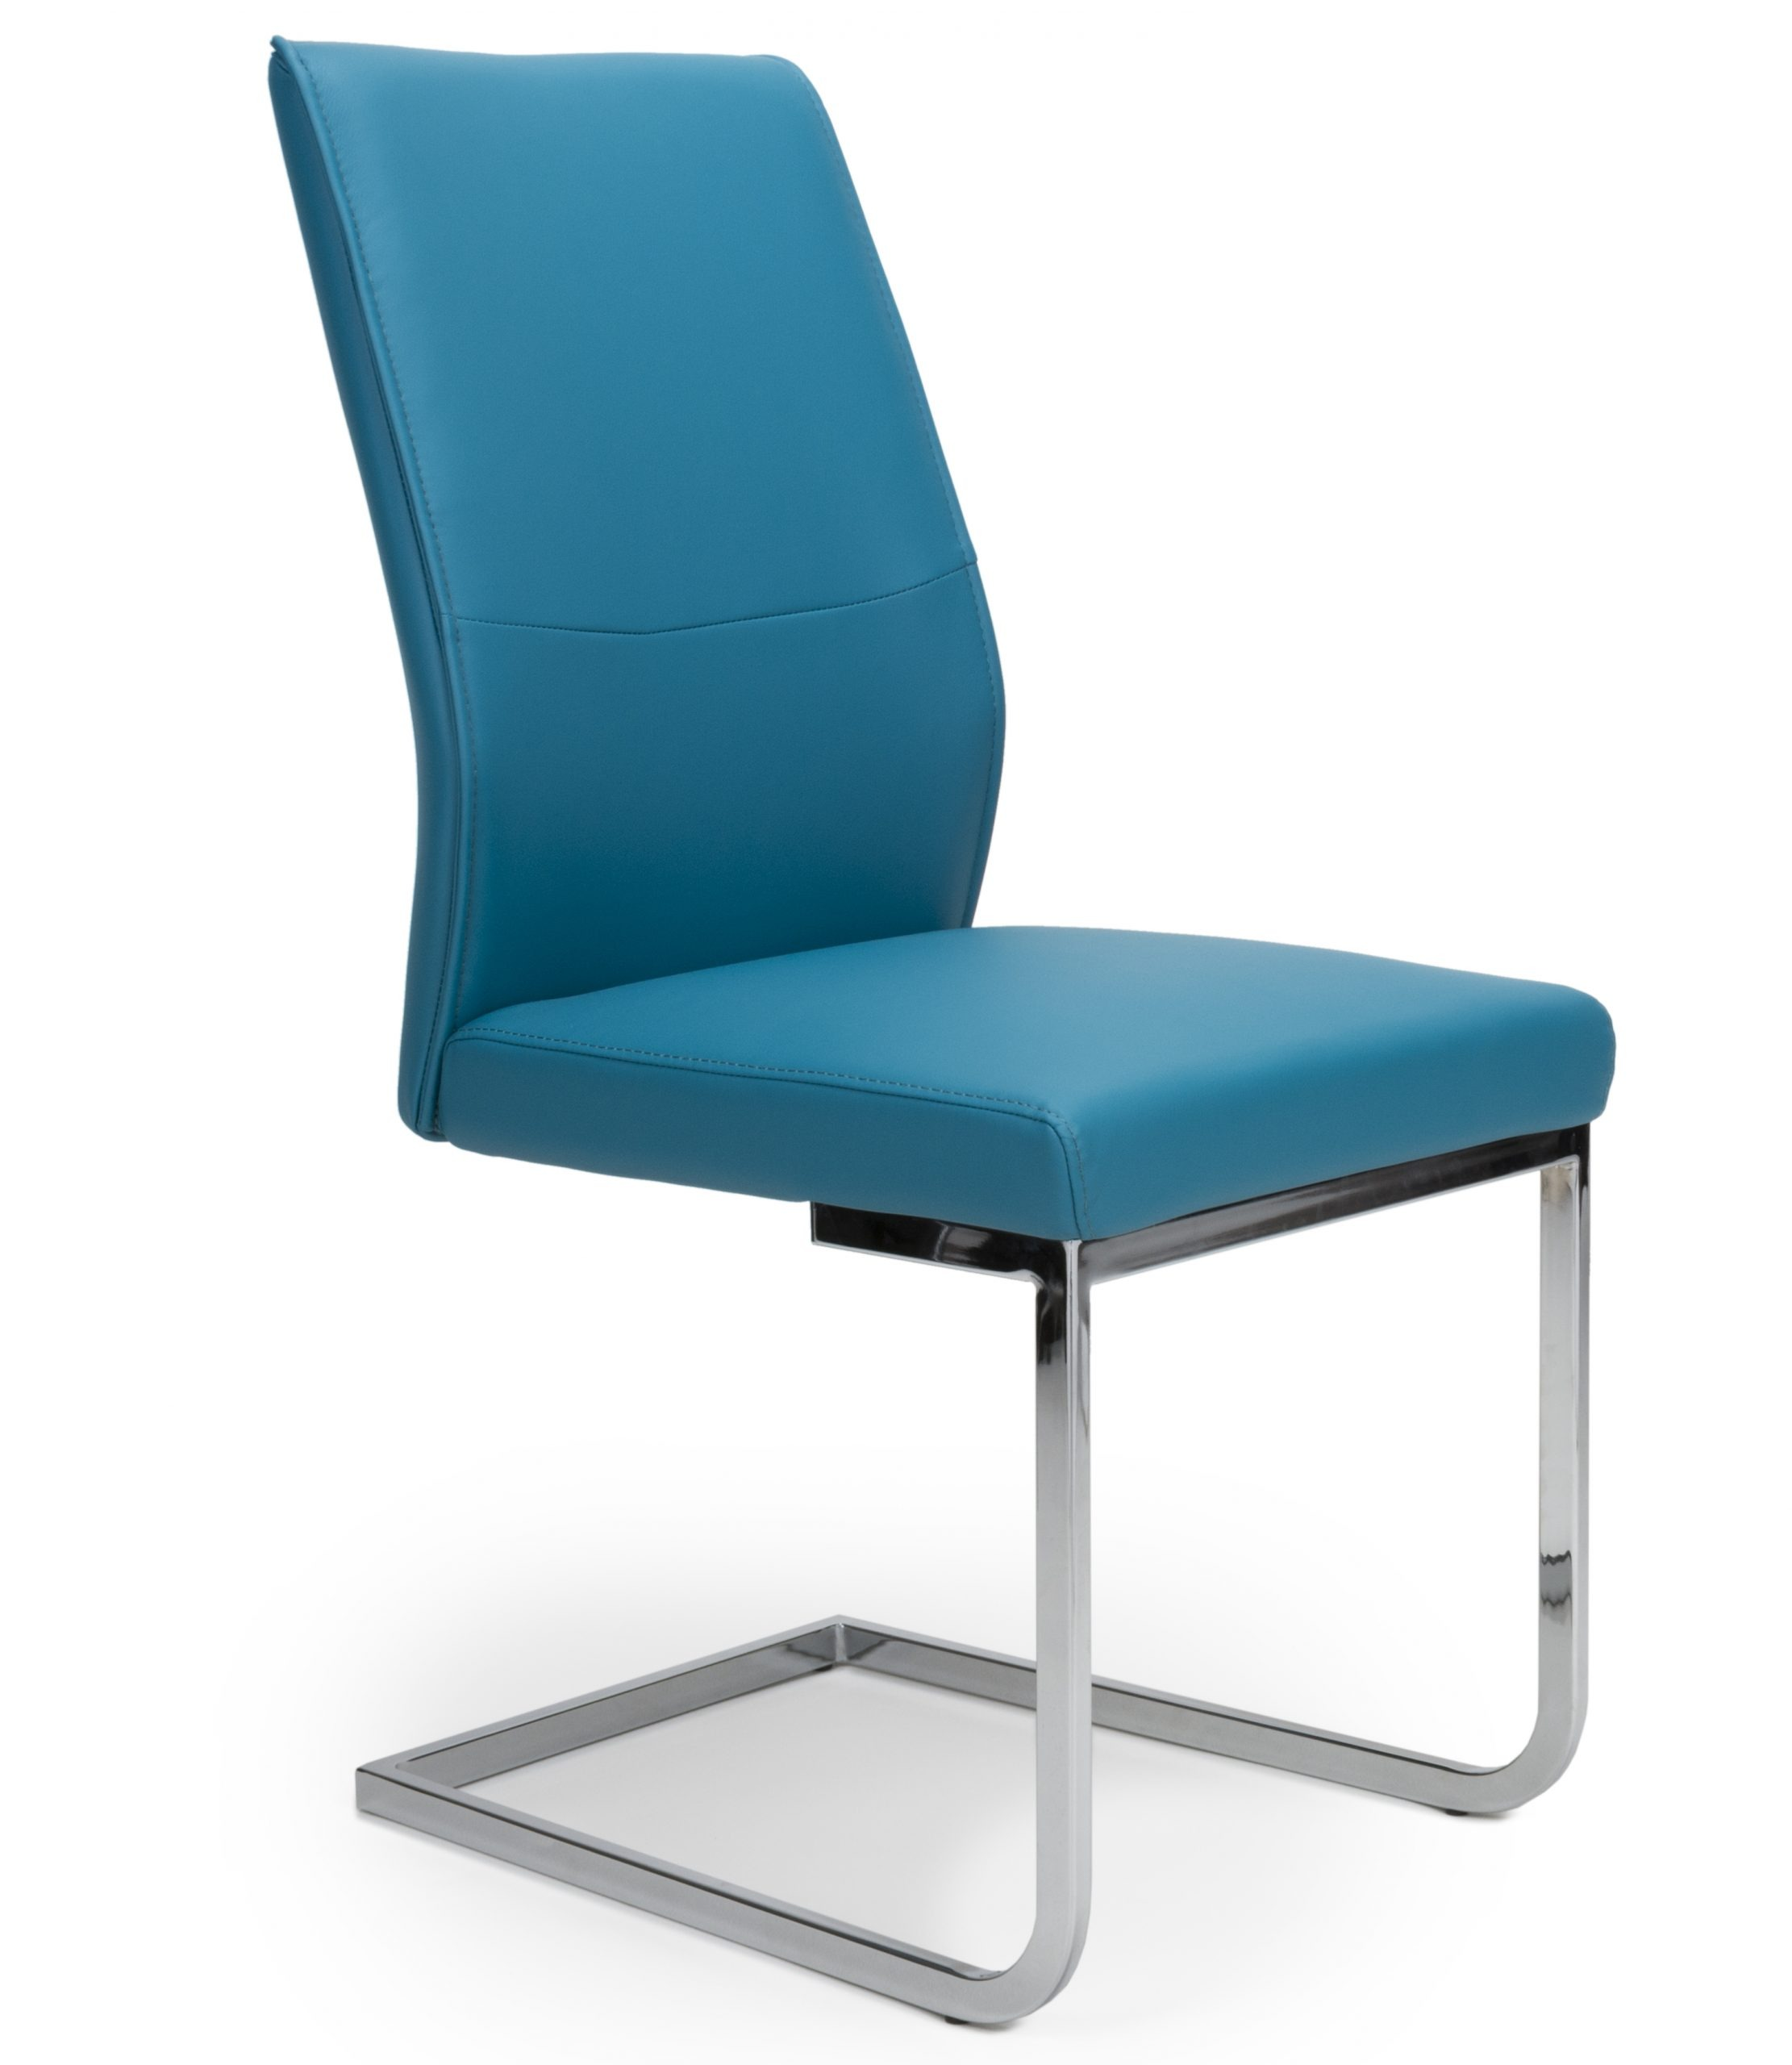 Franklin Teal Blue Leather Cantilever Dining Chair